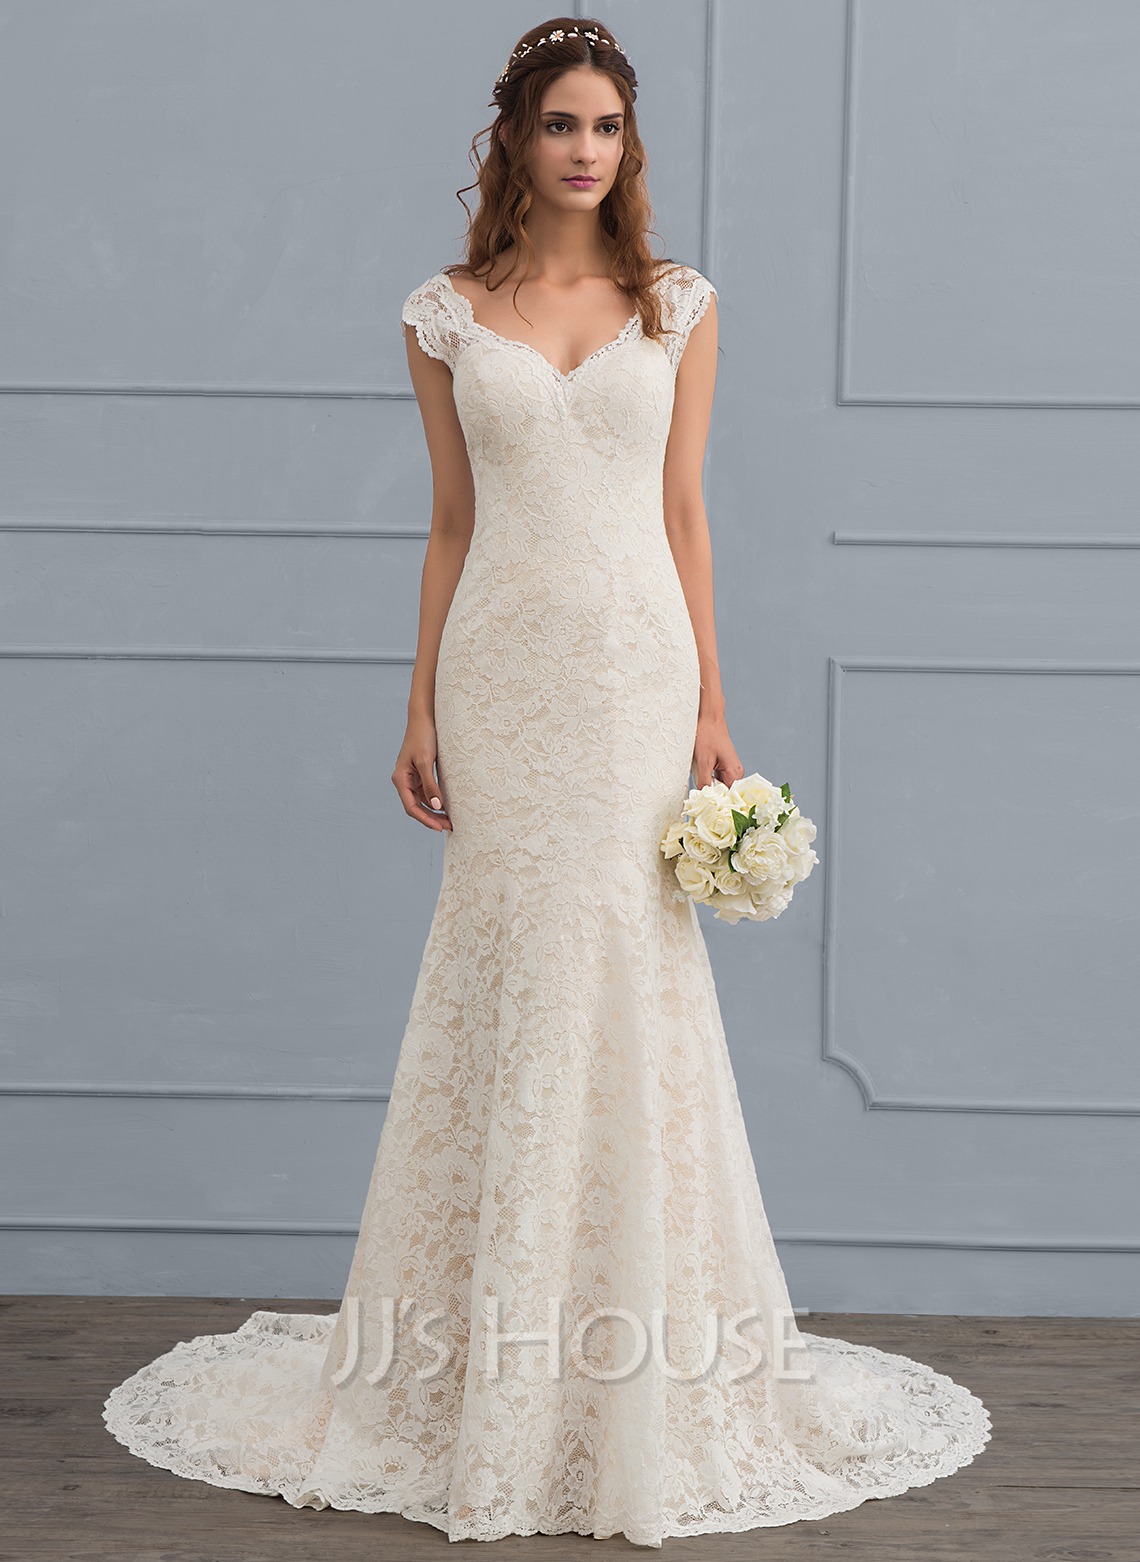 TrumpetMermaid Vneck Court Train Lace Wedding Dress 002118442